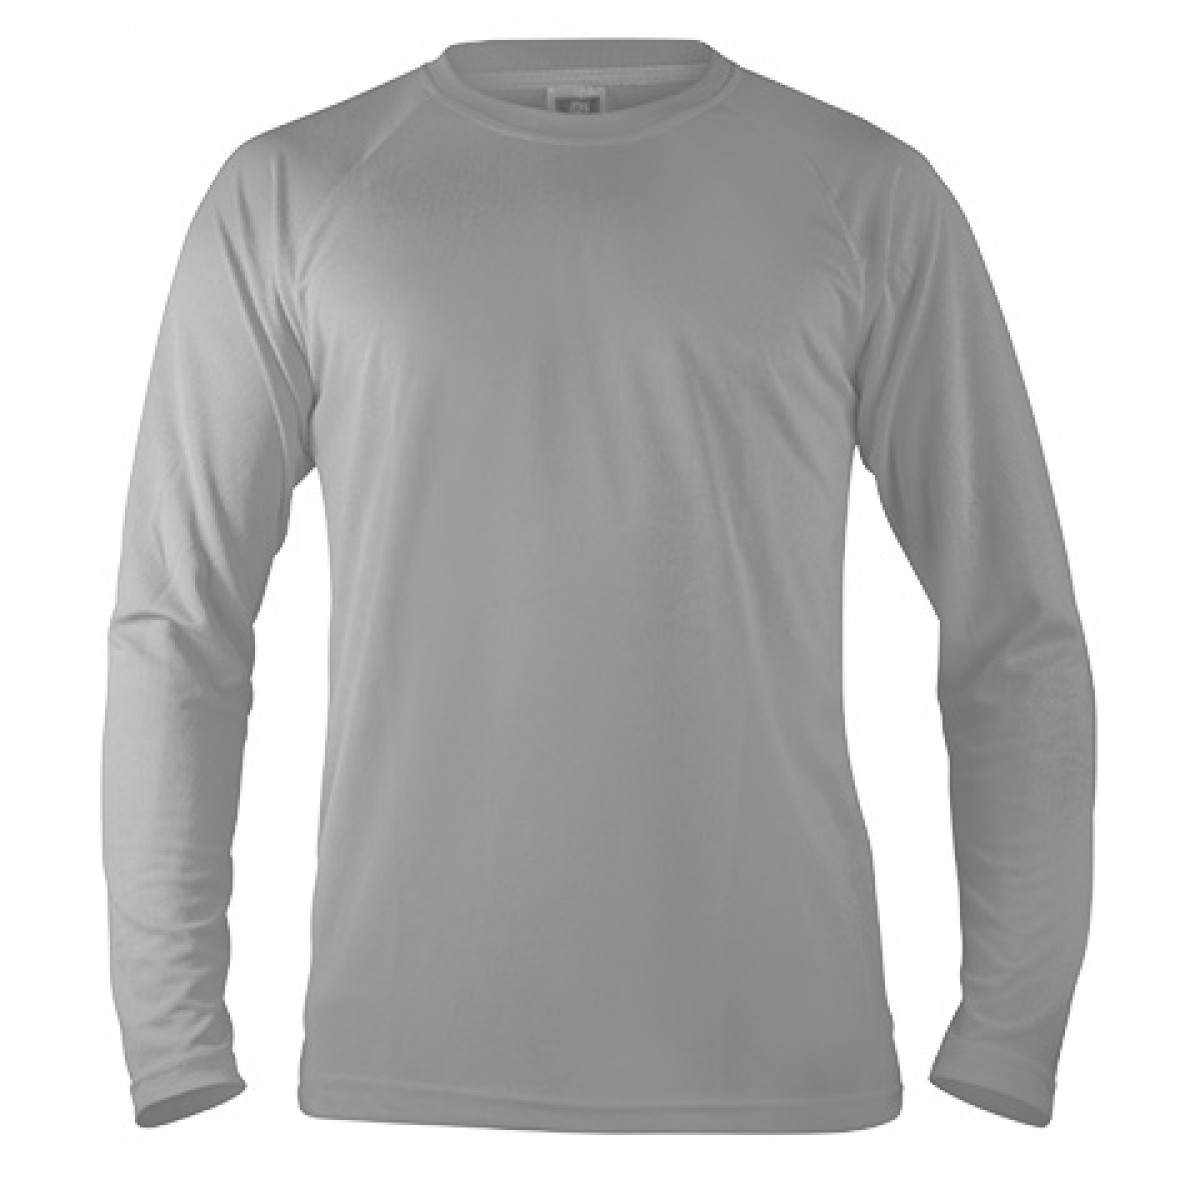 Long Sleeve Performance -Gray -YL